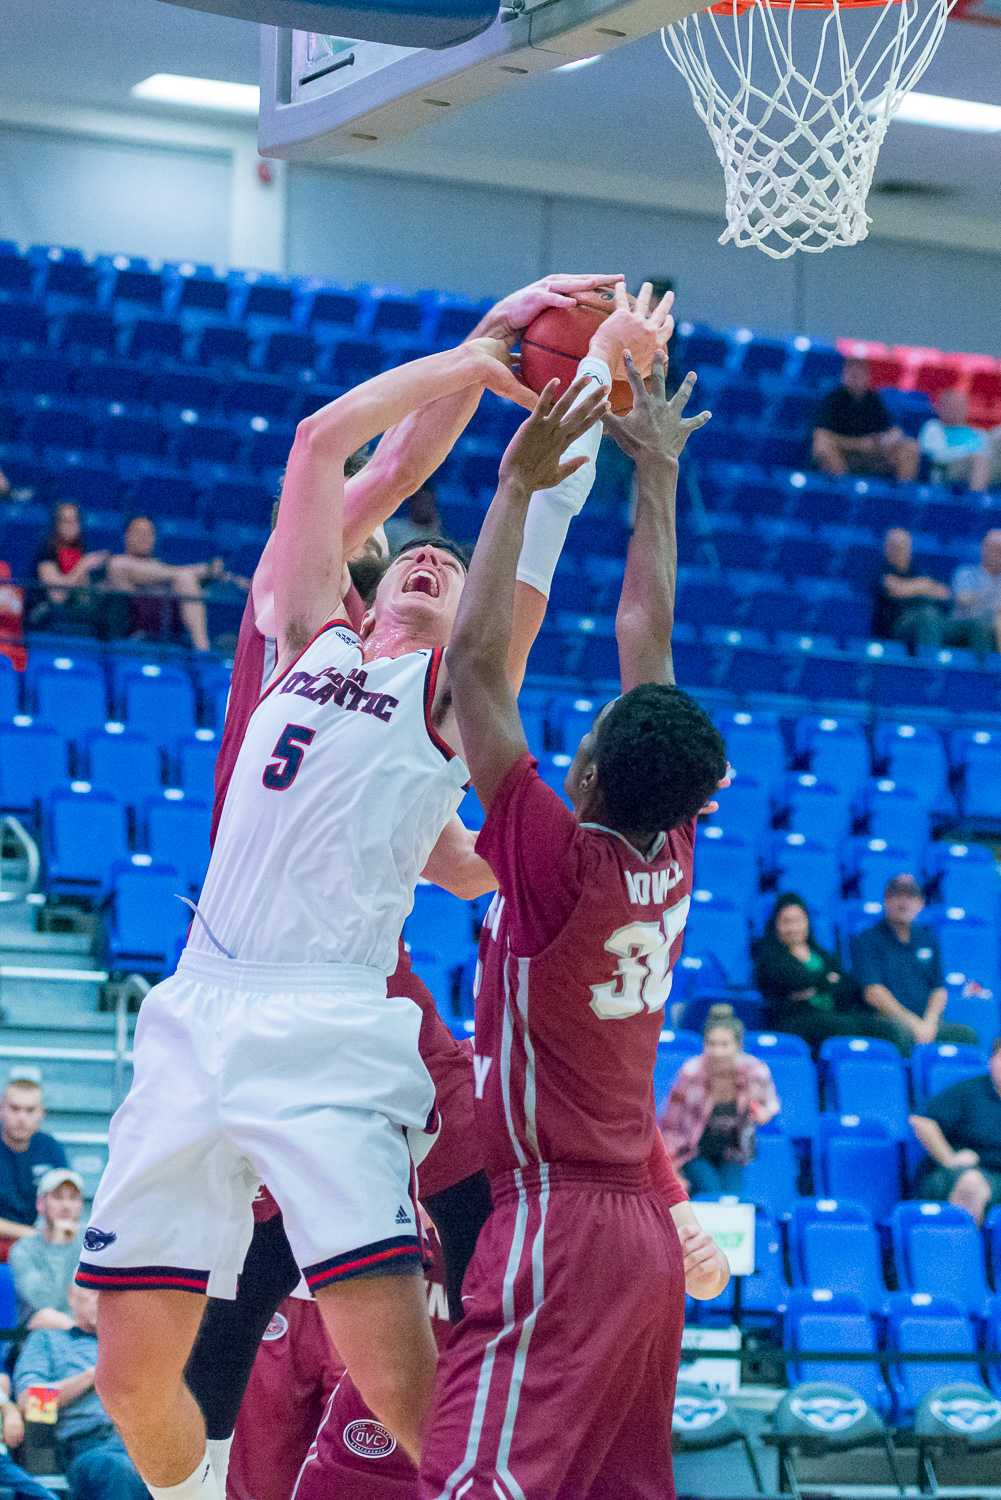 FAU forward Javier Lacunza (5) fights for a rebound with EKU guards Timmy Knipp (22) and Ja'Mill Powell (32).